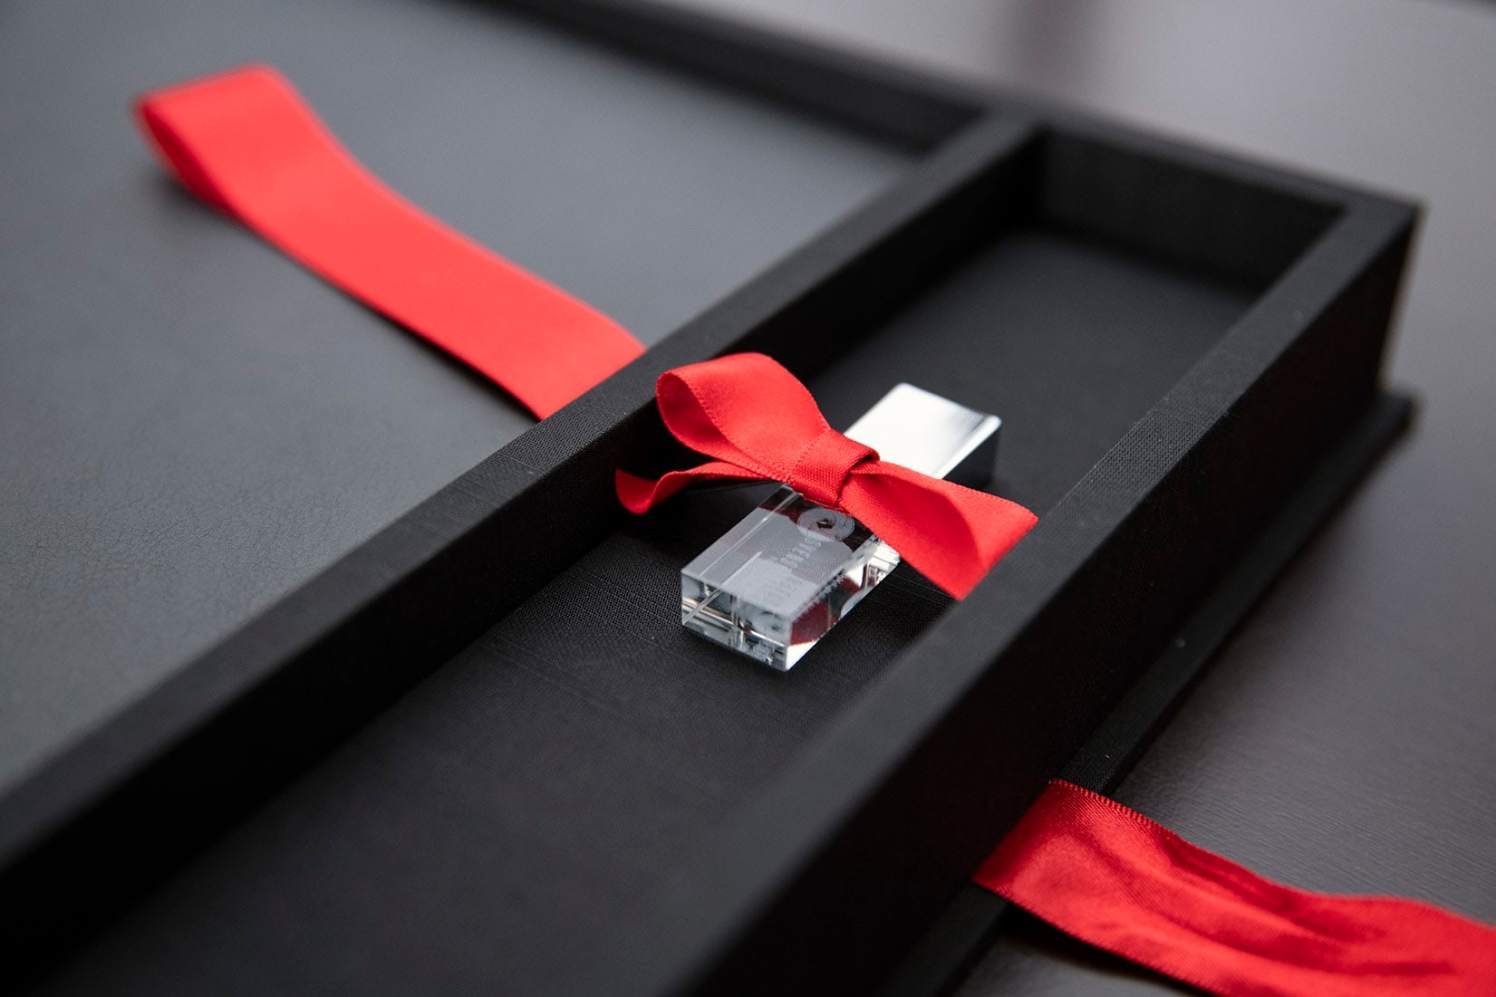 USB ribbon